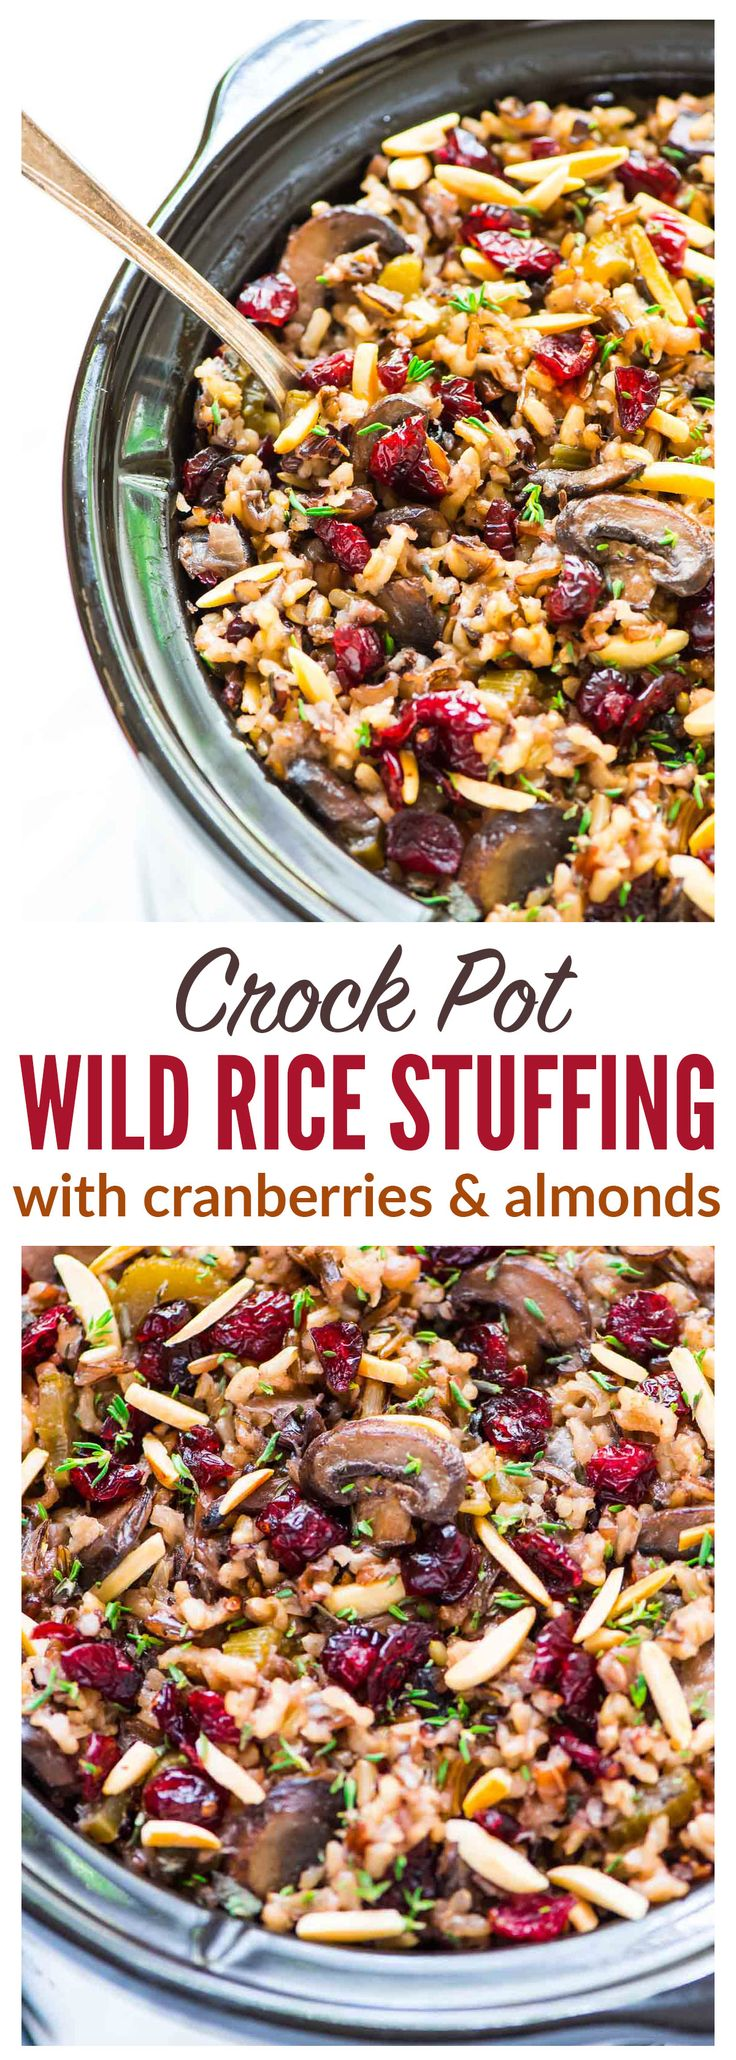 Free up the oven for Thanksgiving with this Crockpot Stuffing with Wild Rice and Cranberries. An easy, DELICIOUS gluten free stuffing recipe that everyone can enjoy! Simple, cozy slow cooker recipe that's perfect for holidays or anytime you are hosting a crowd. Recipe at wellplated.com | @wellplated {vegan, gluten free}